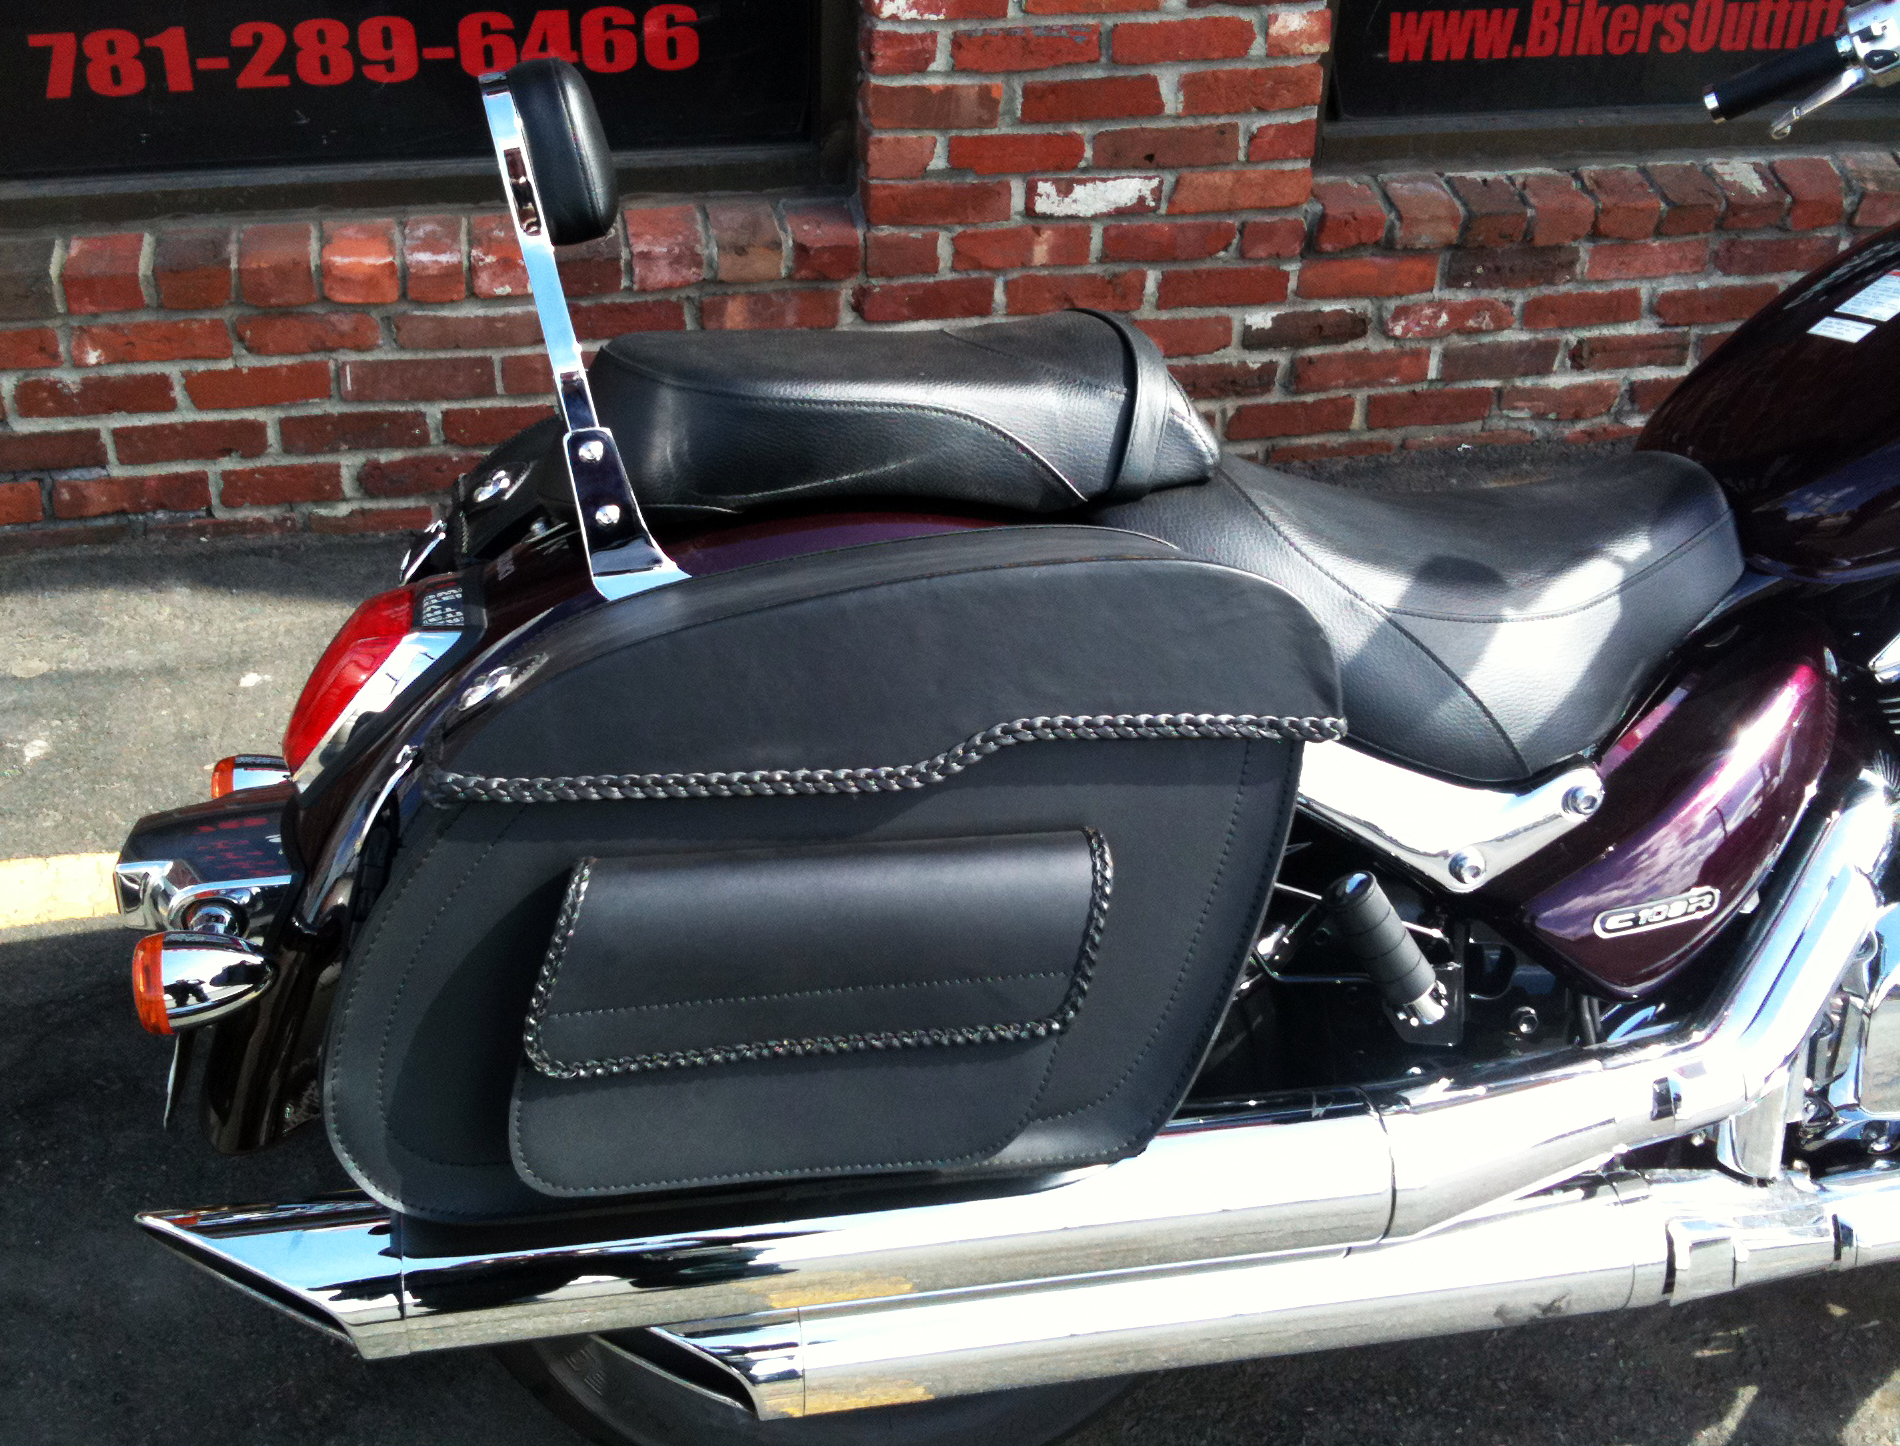 DETACHABLE SADDLEBAGS